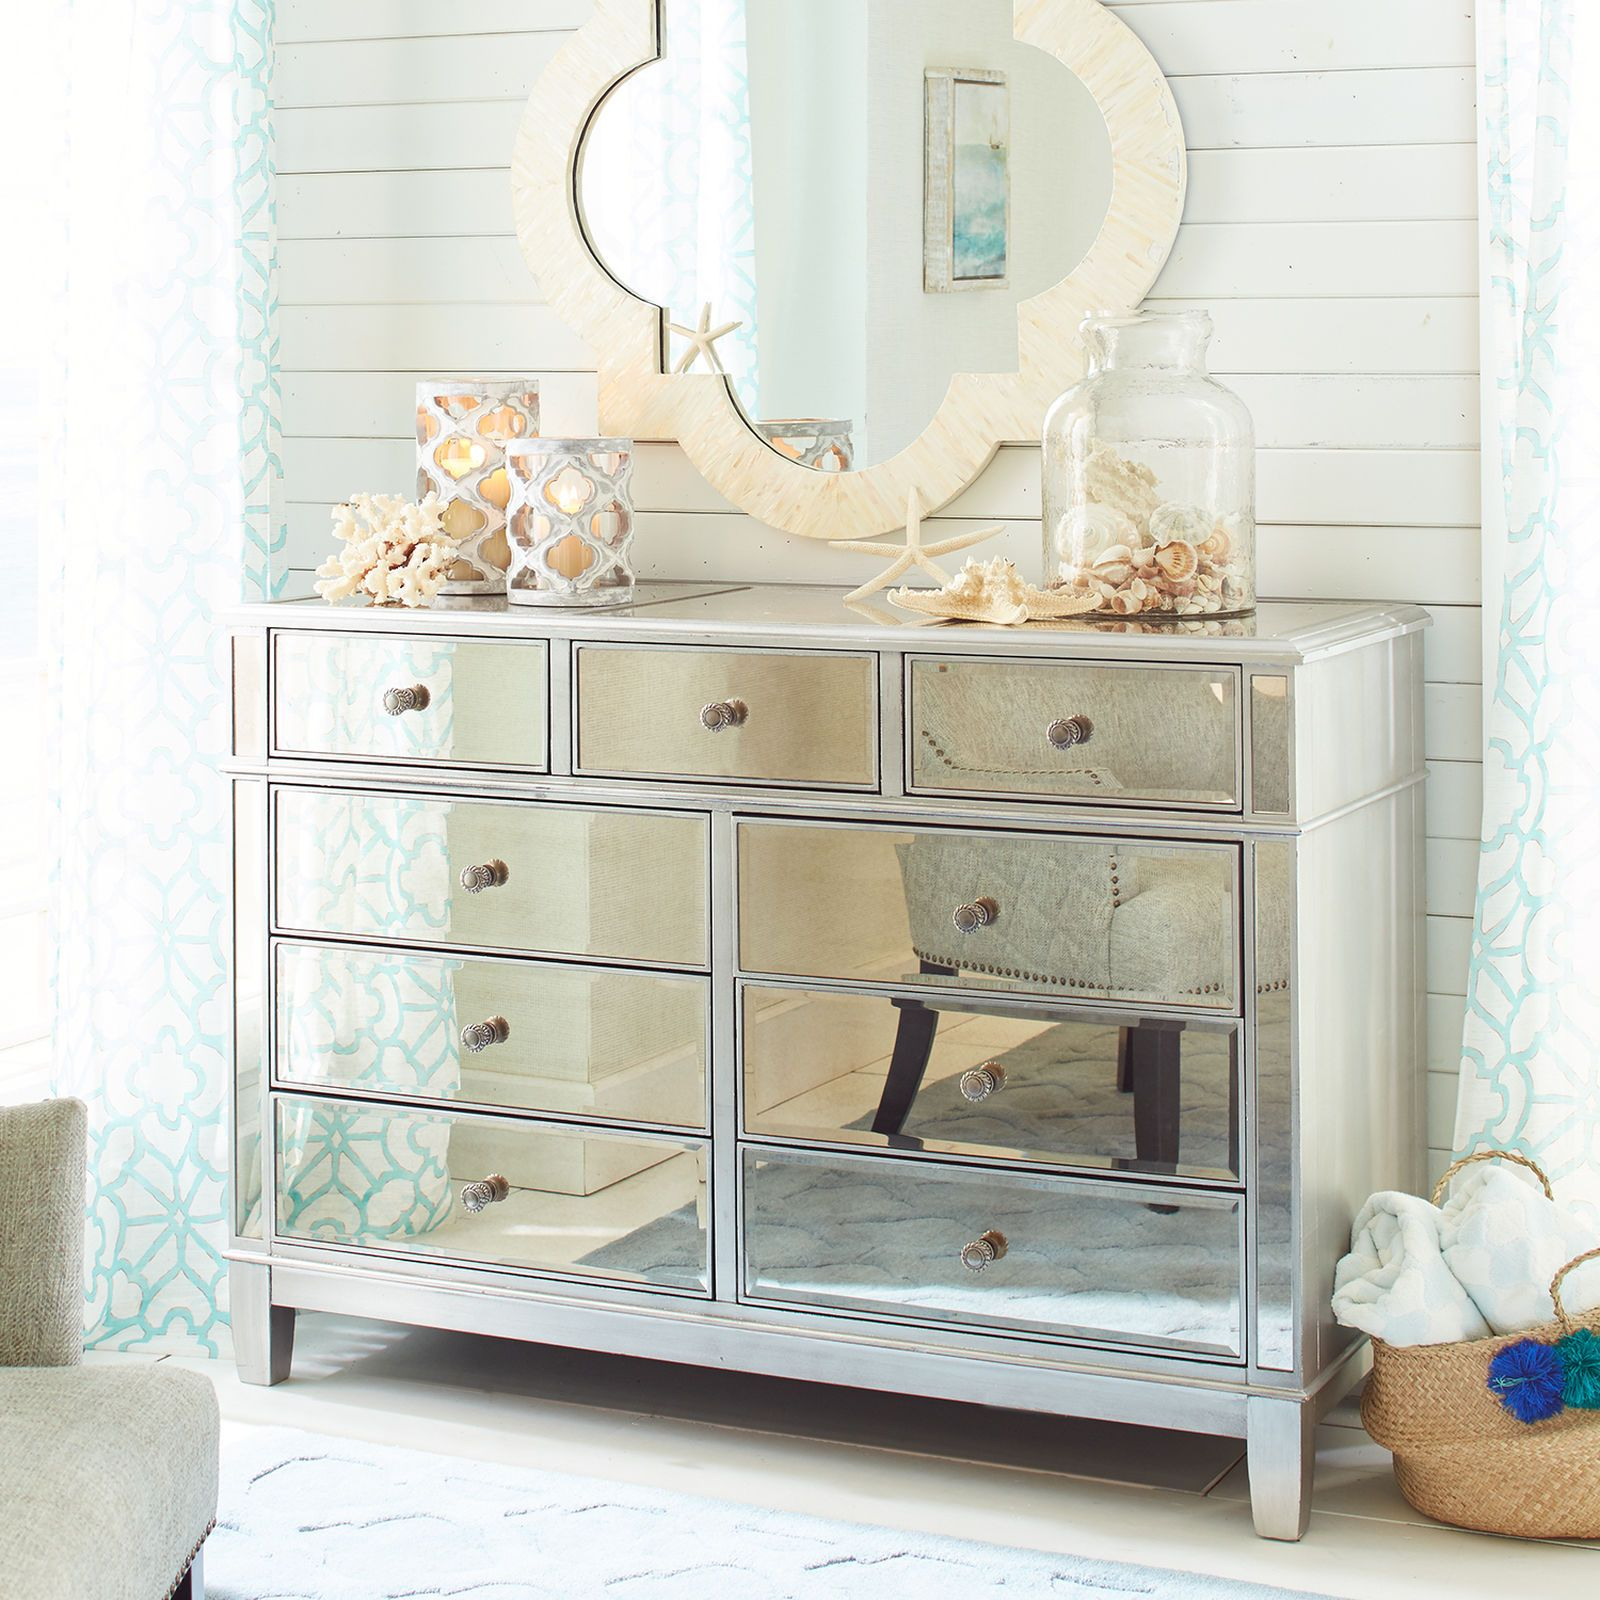 image result for mirrored dresser  mirrored bedroom